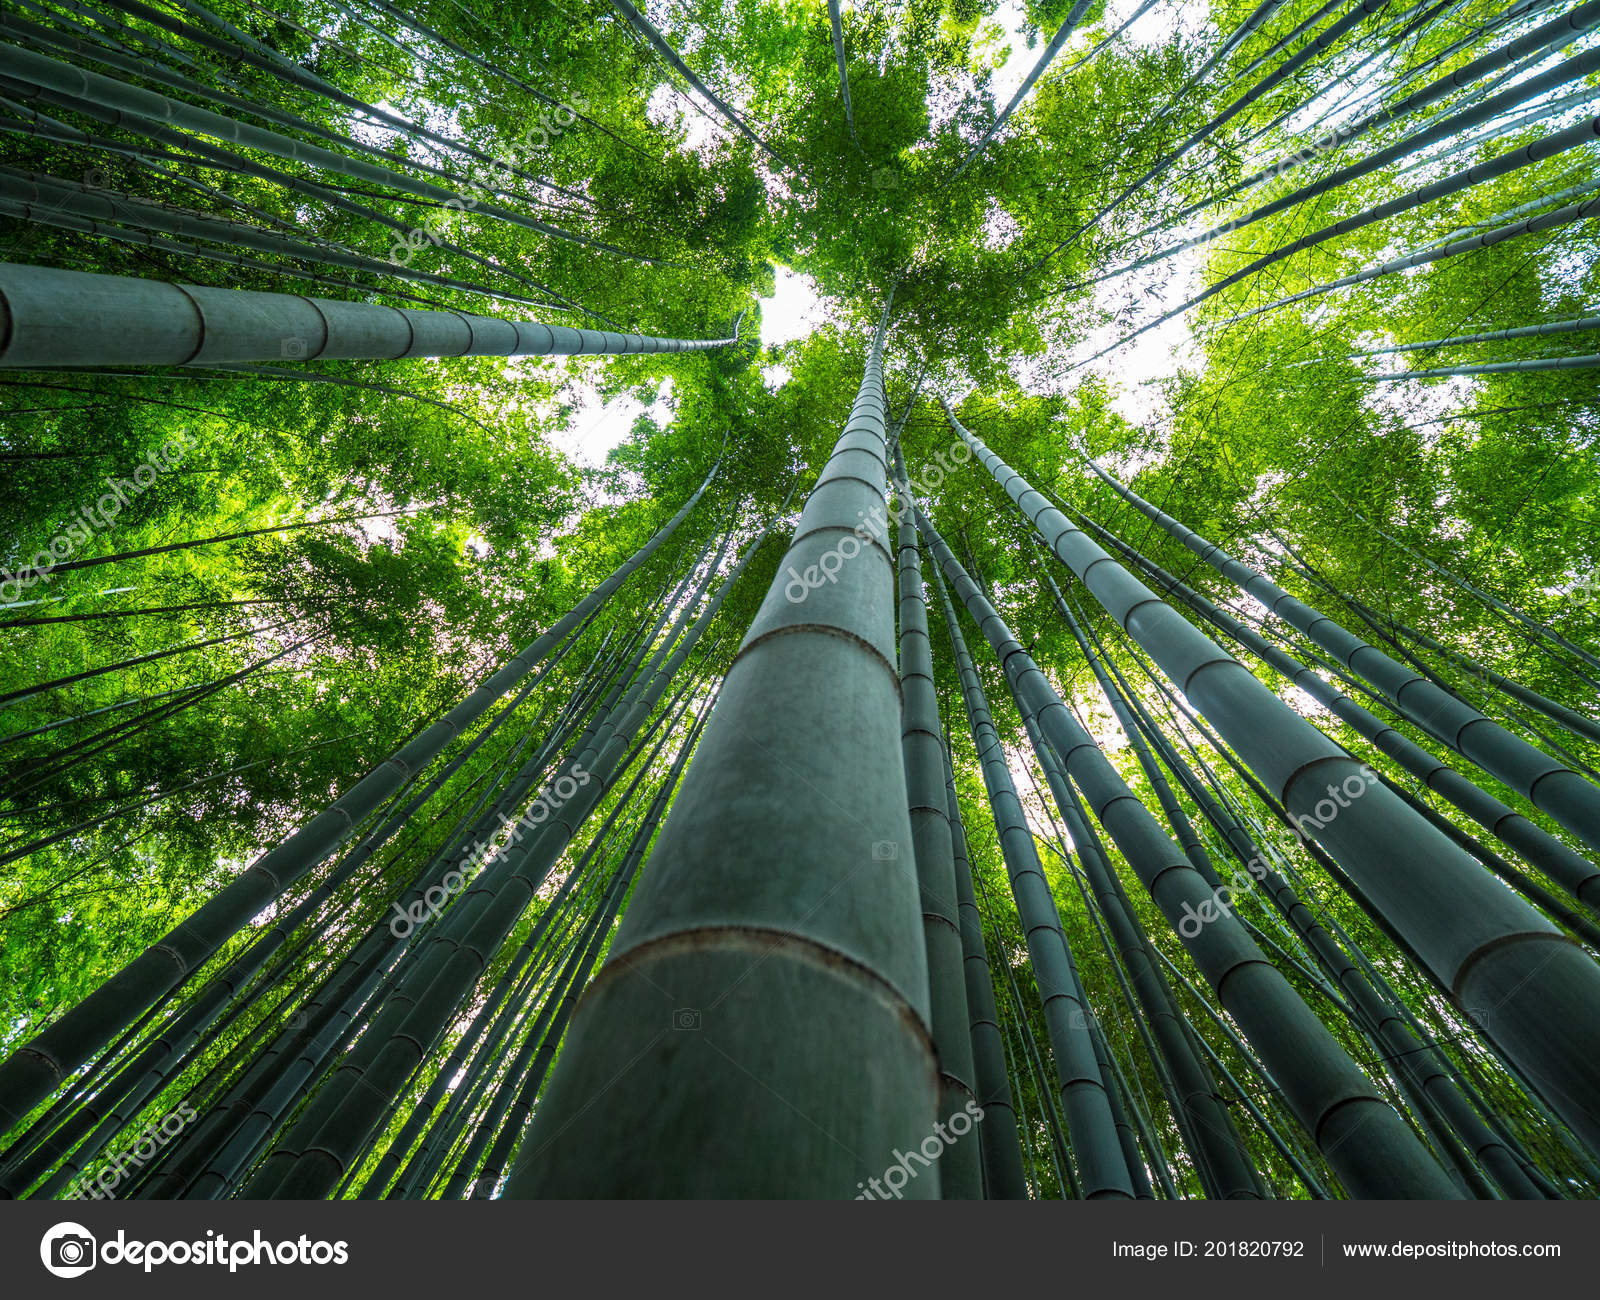 Tall Bamboo Trees In An Japanese Forest Stock Photo C 4kclips